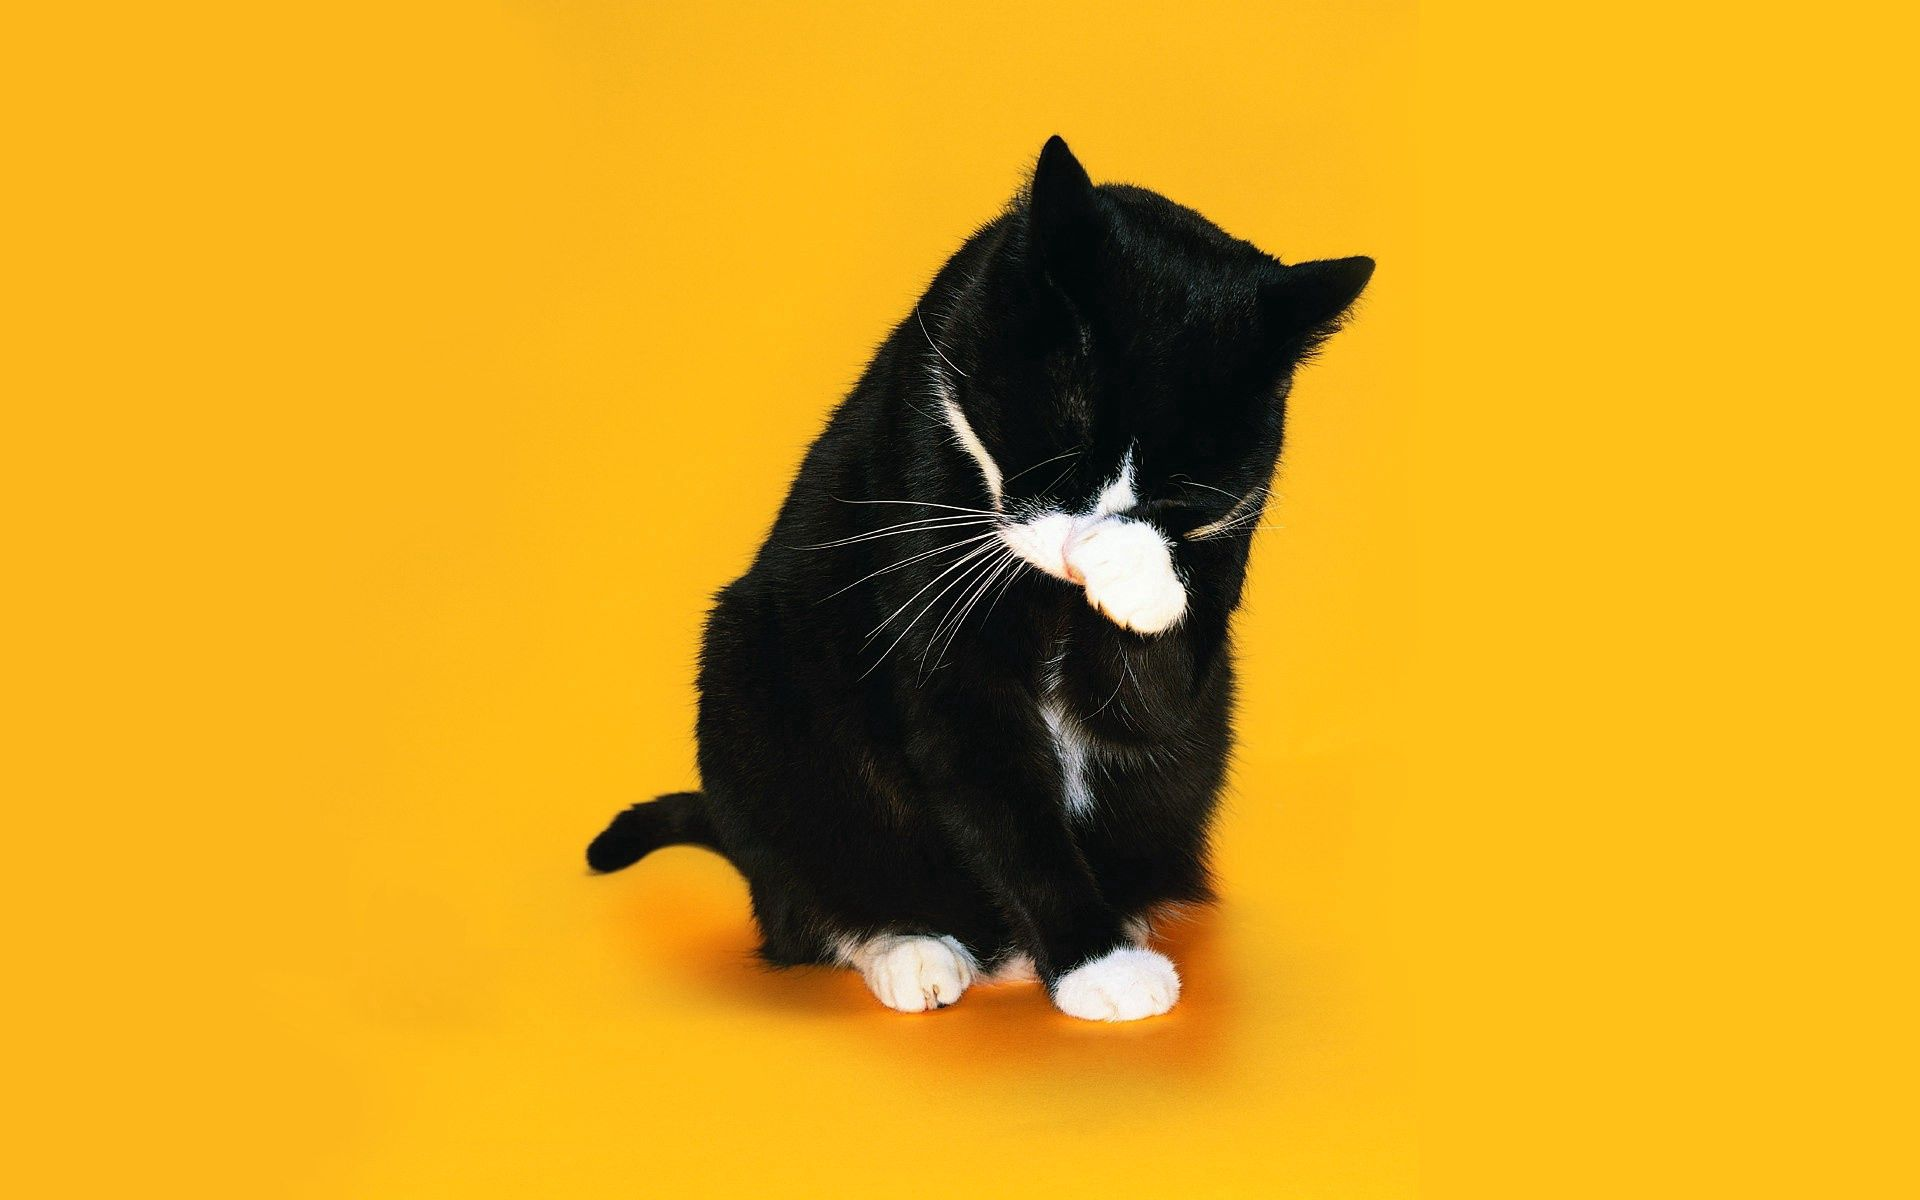 118243 download wallpaper Animals, Cat, Paw, Muzzle, Lick Your Lips, Licking screensavers and pictures for free